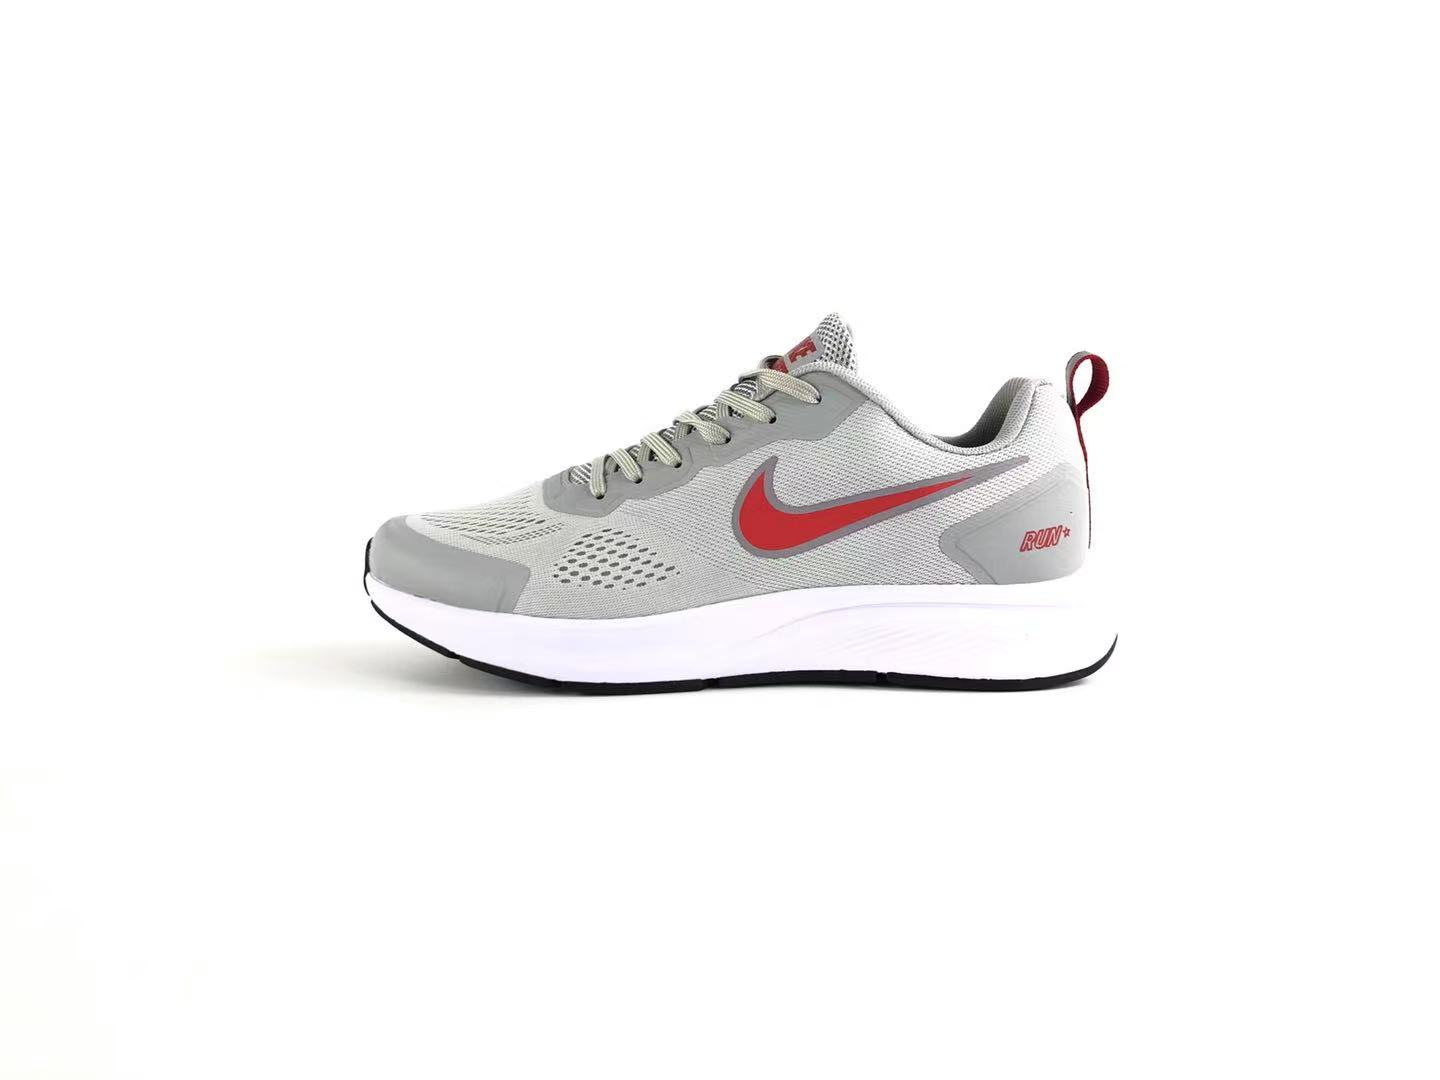 Nike Air Zoom 27 Jacquard Breathable Light Gray Red Running Shoes Left